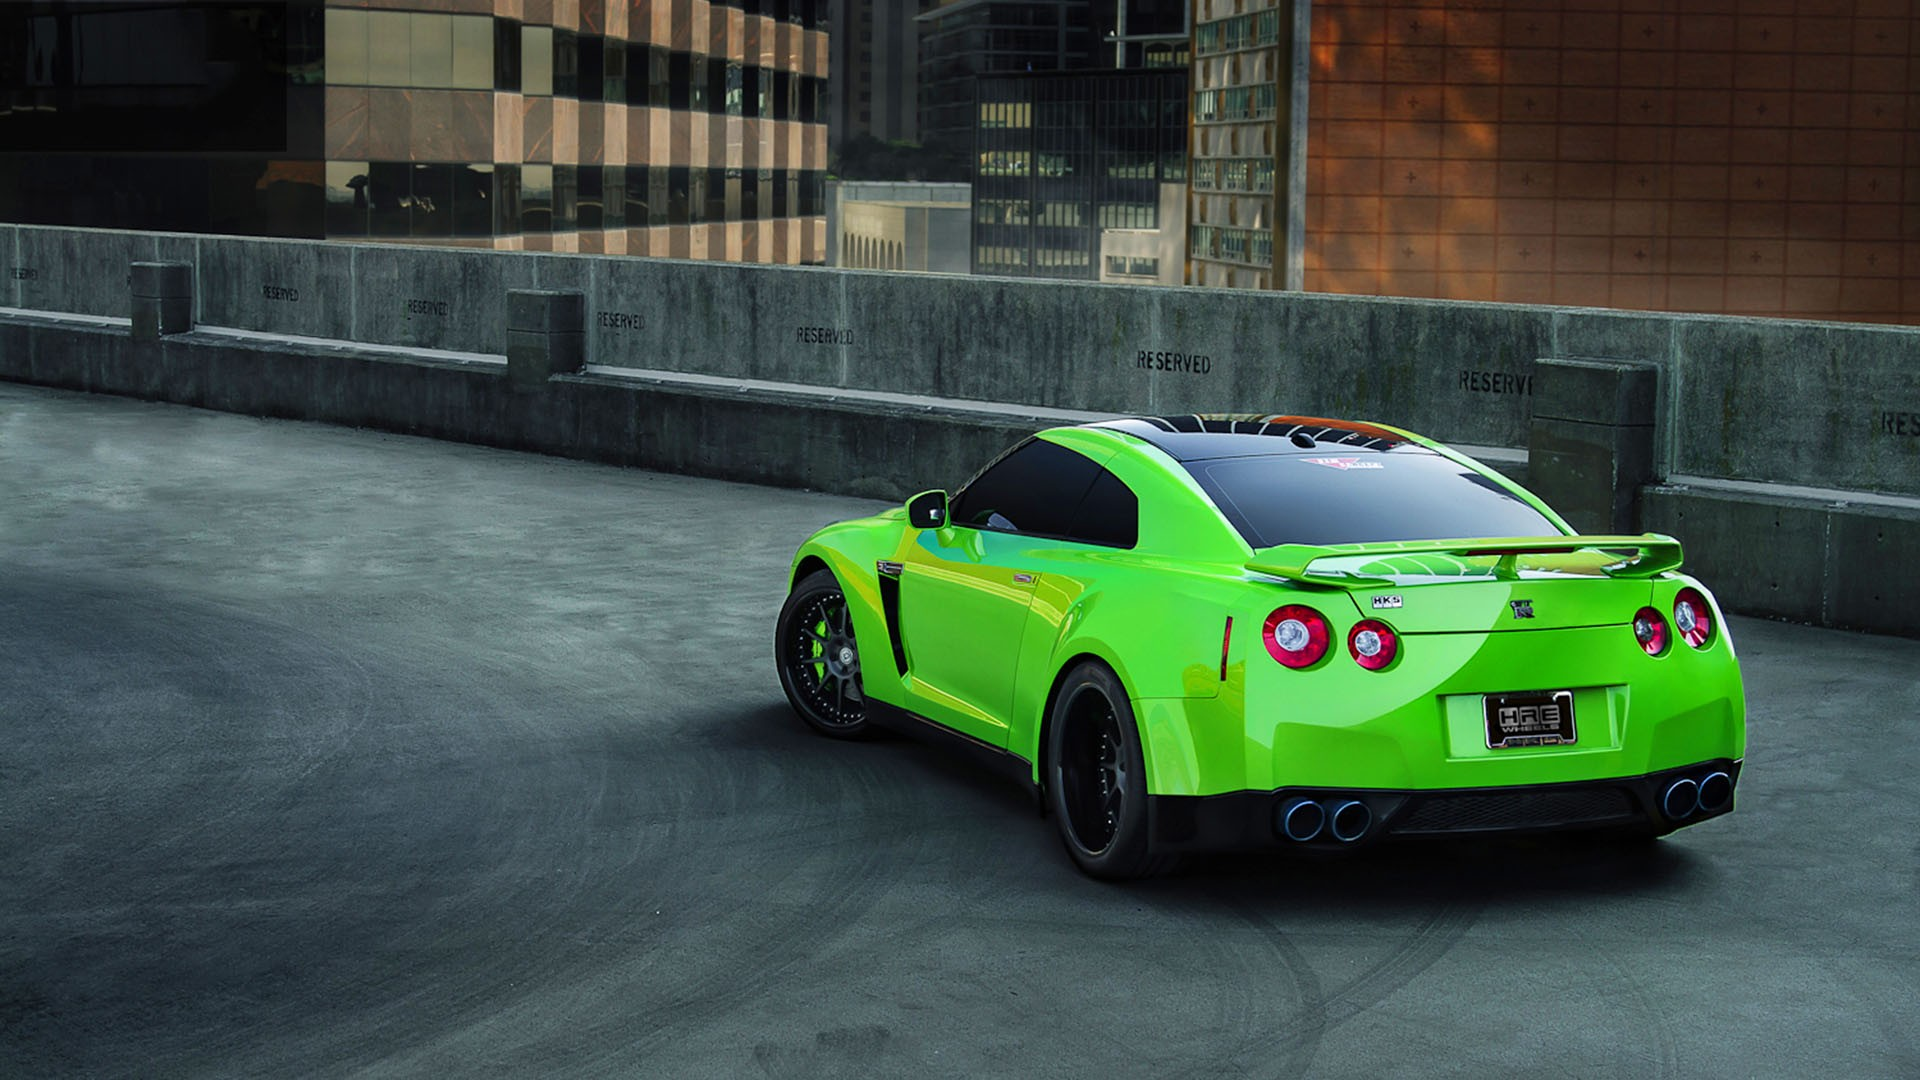 Nissan GTR Wallpapers Archives - HDWallSource.com